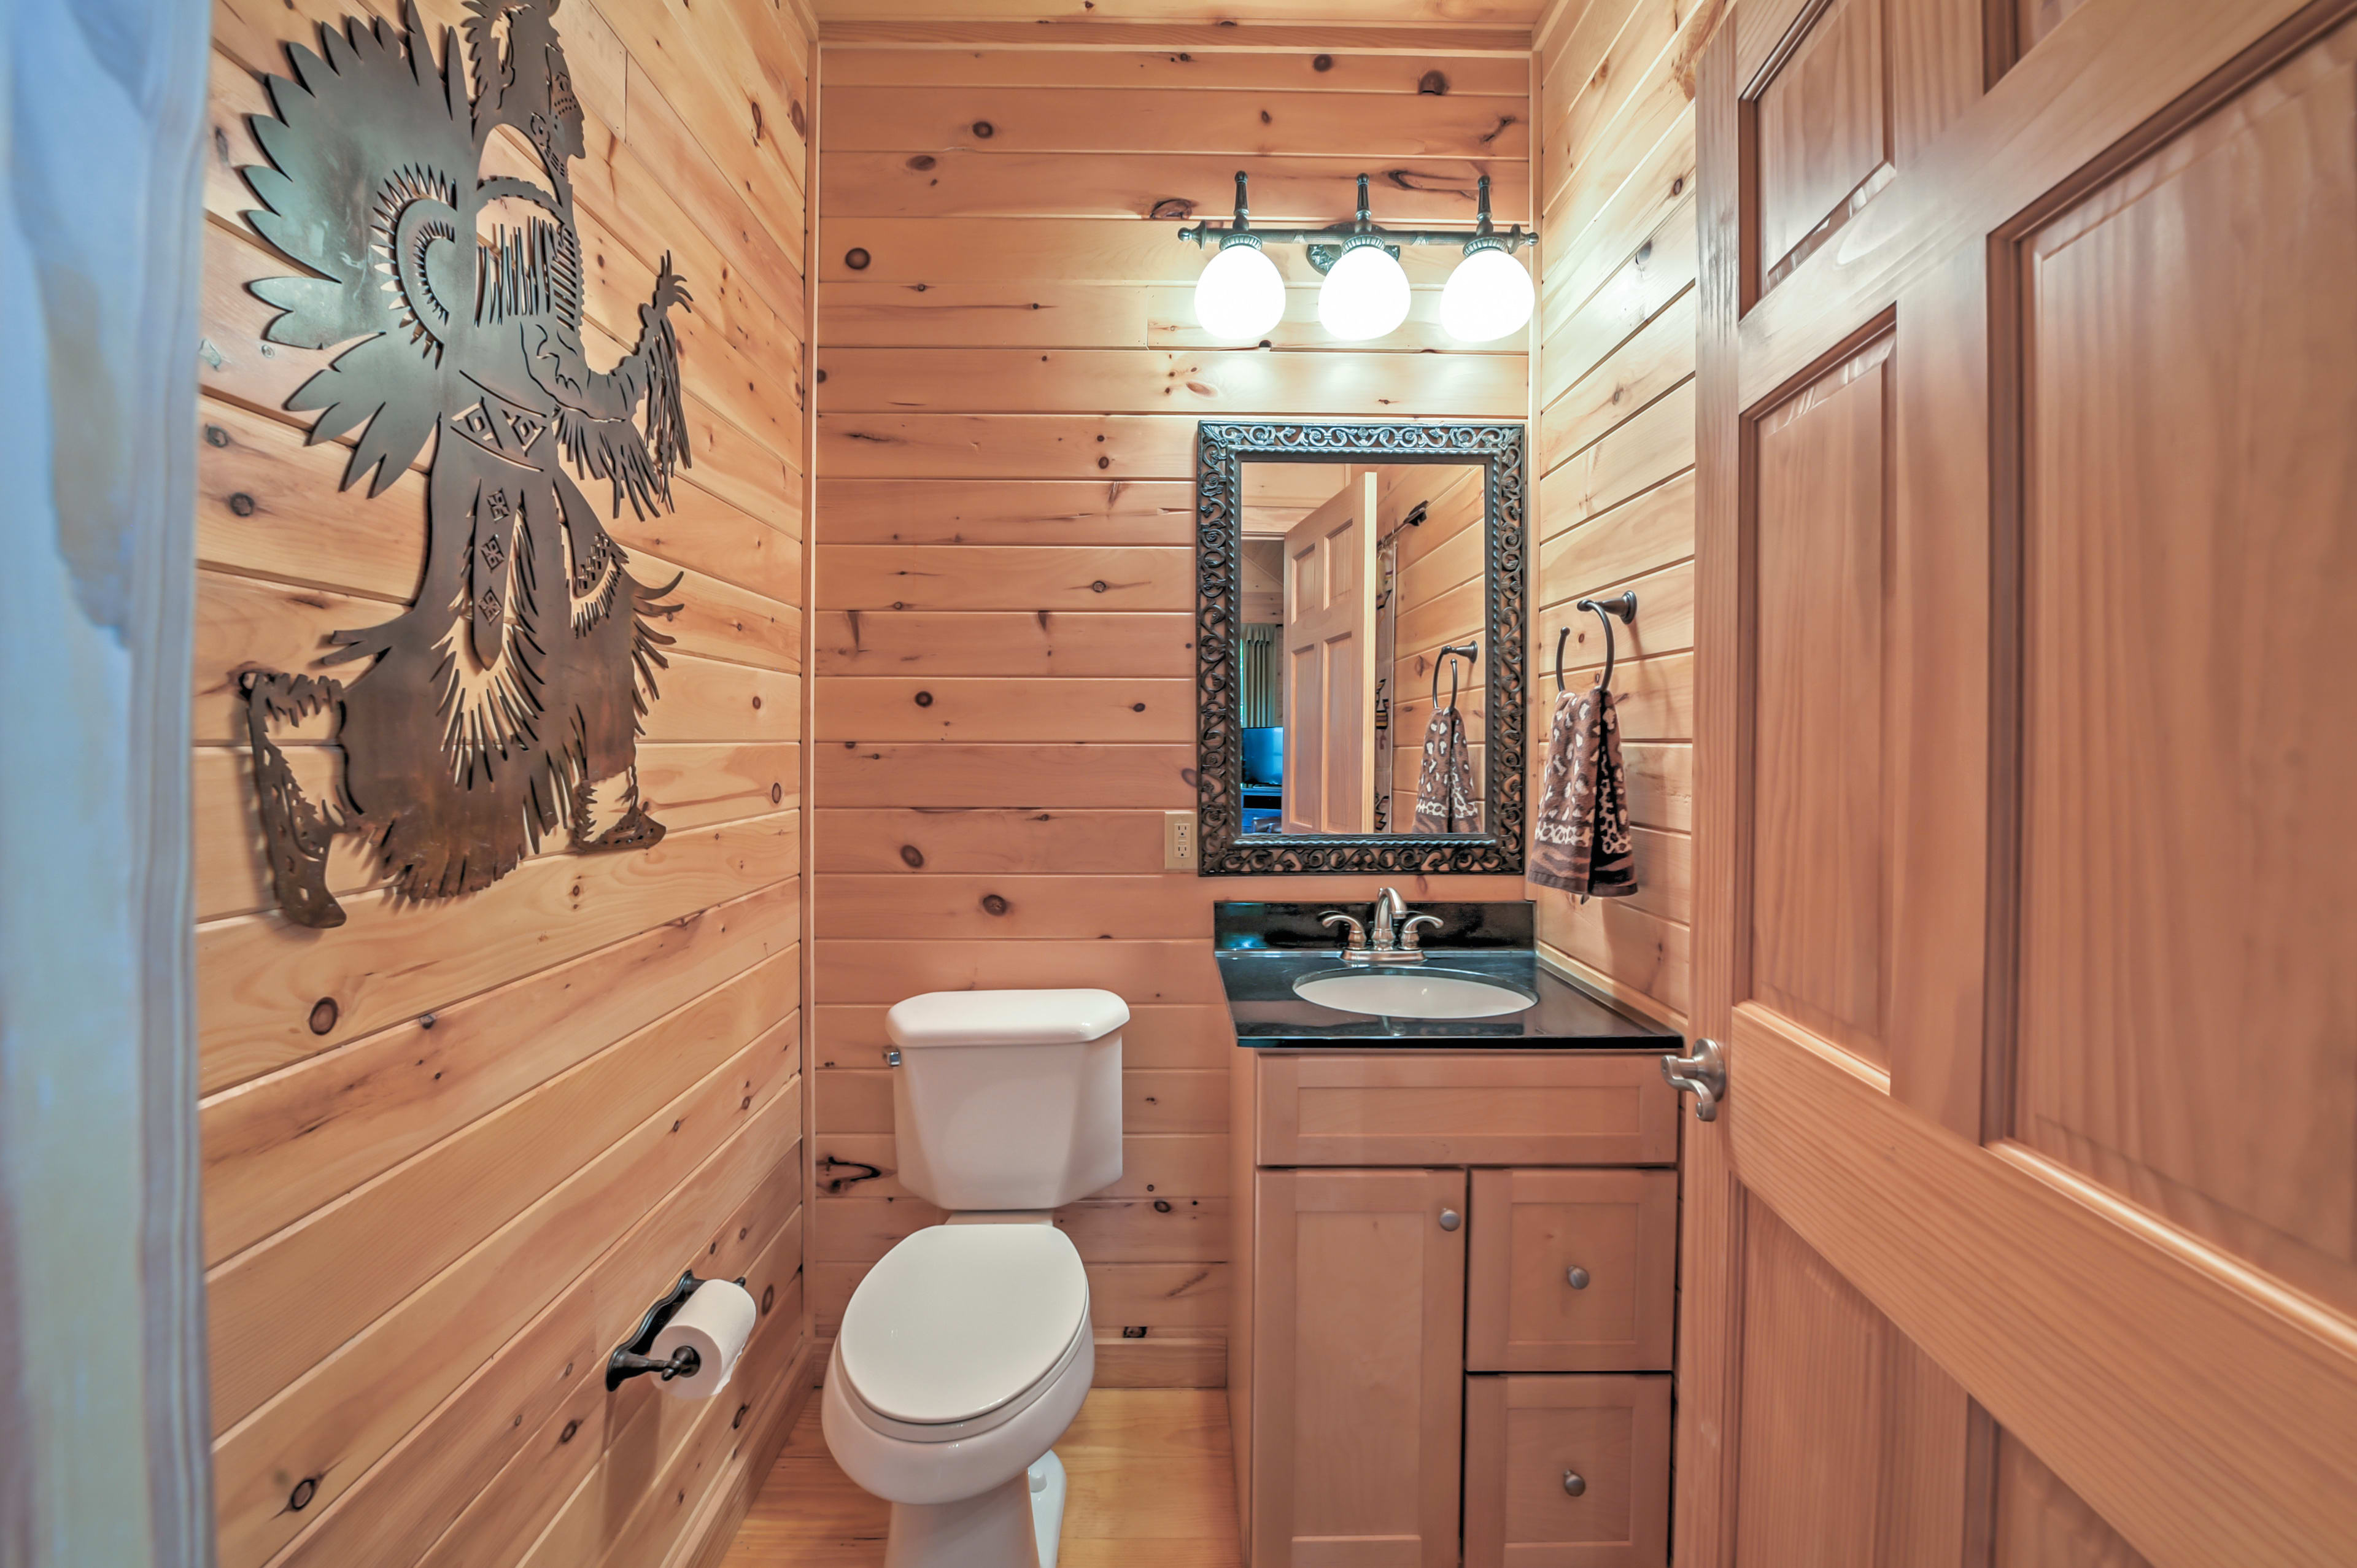 Wash up for dinner in this powder room.